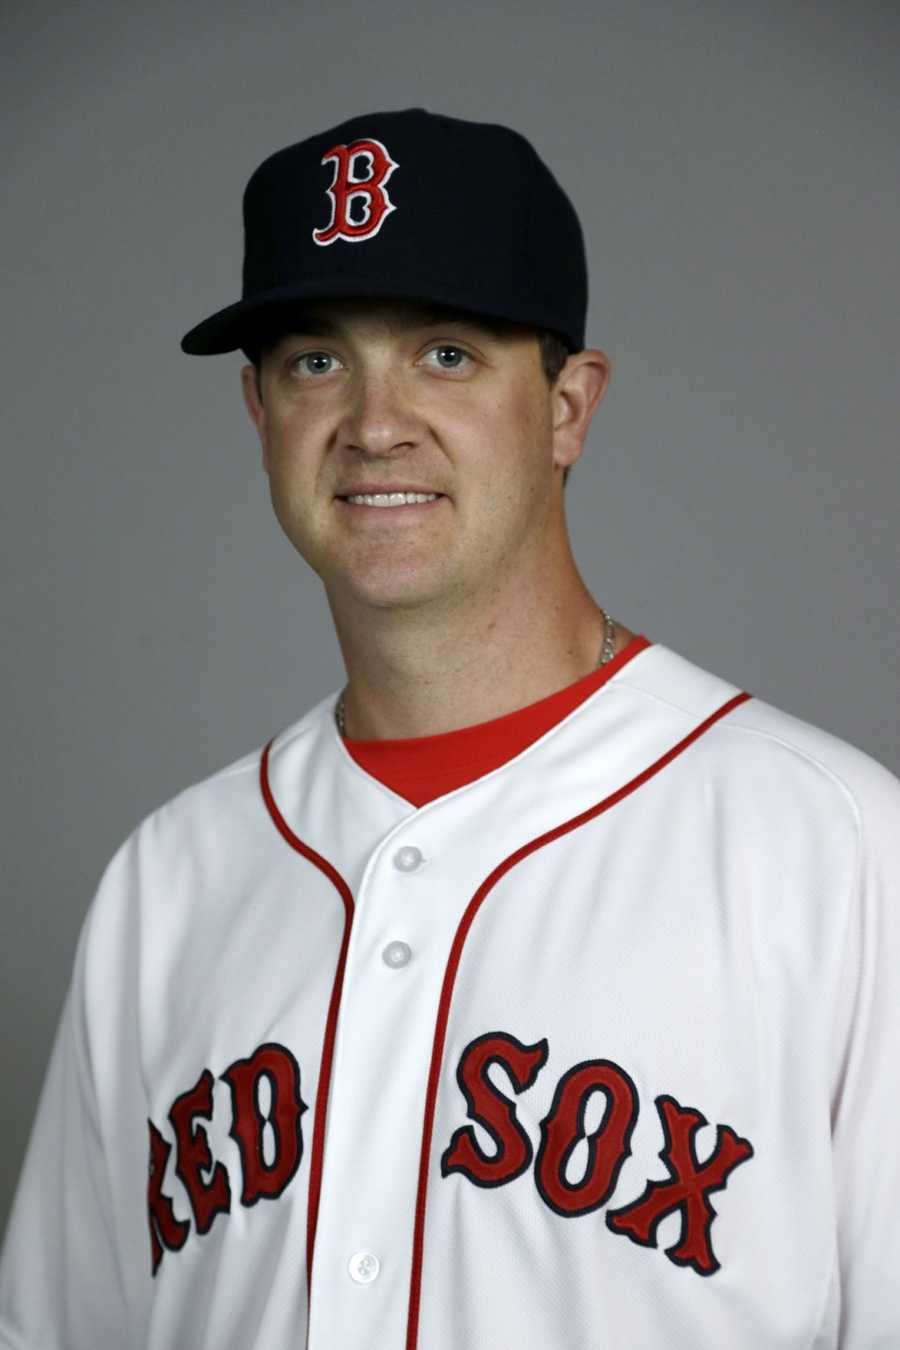 27) Steven Wright, pitcher - $502,000